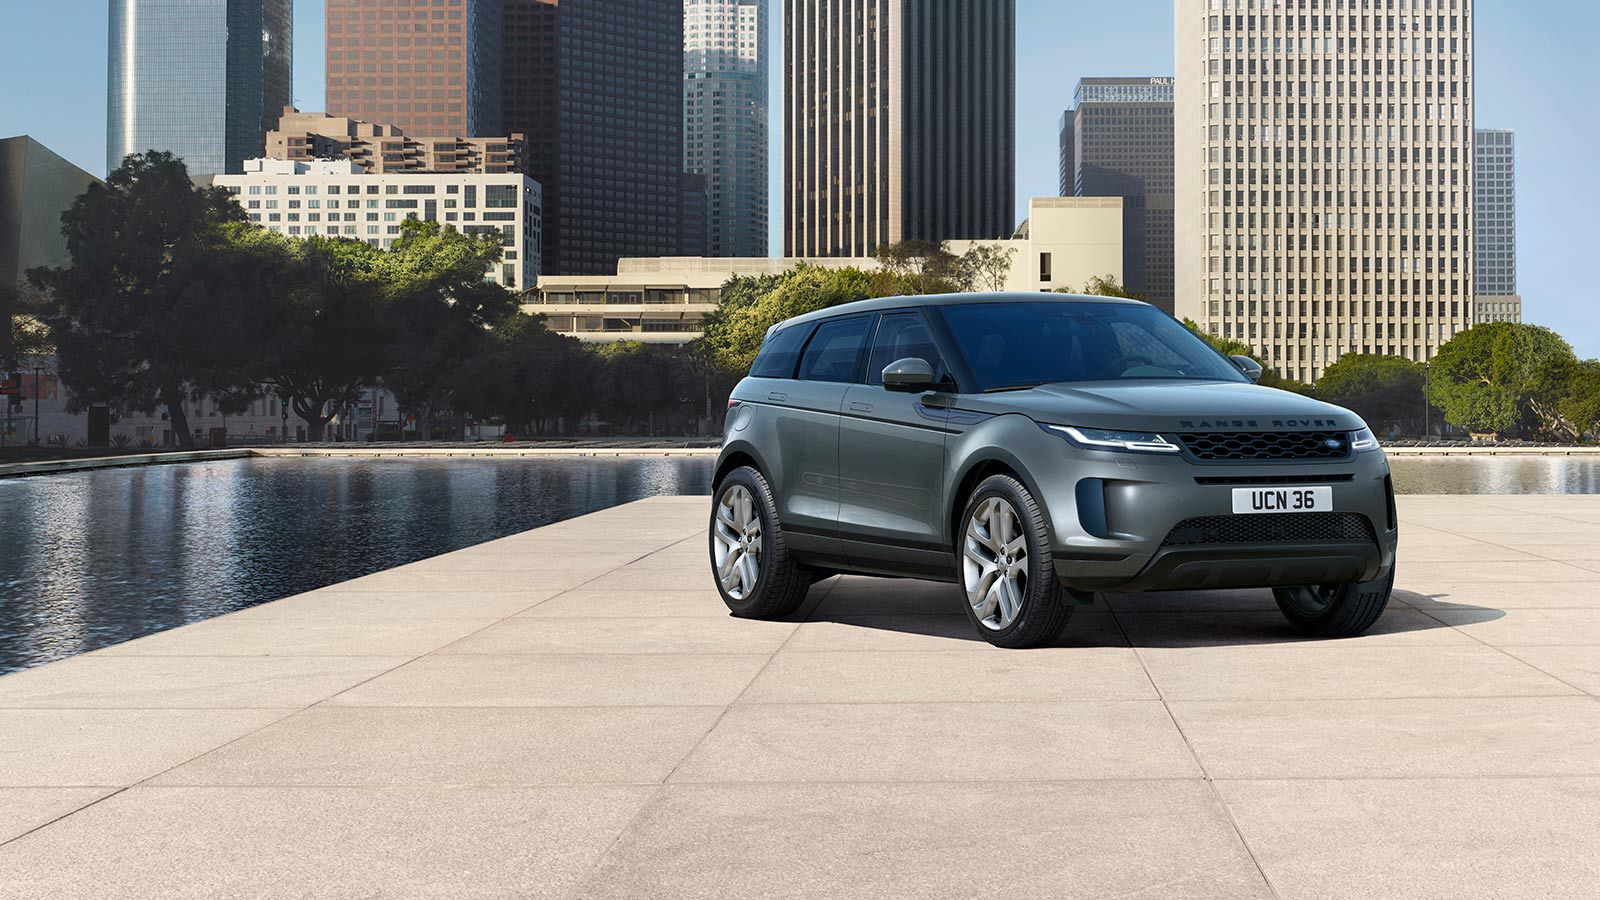 New Range Rover Evoque Options Accessories Land Rover New Zealand